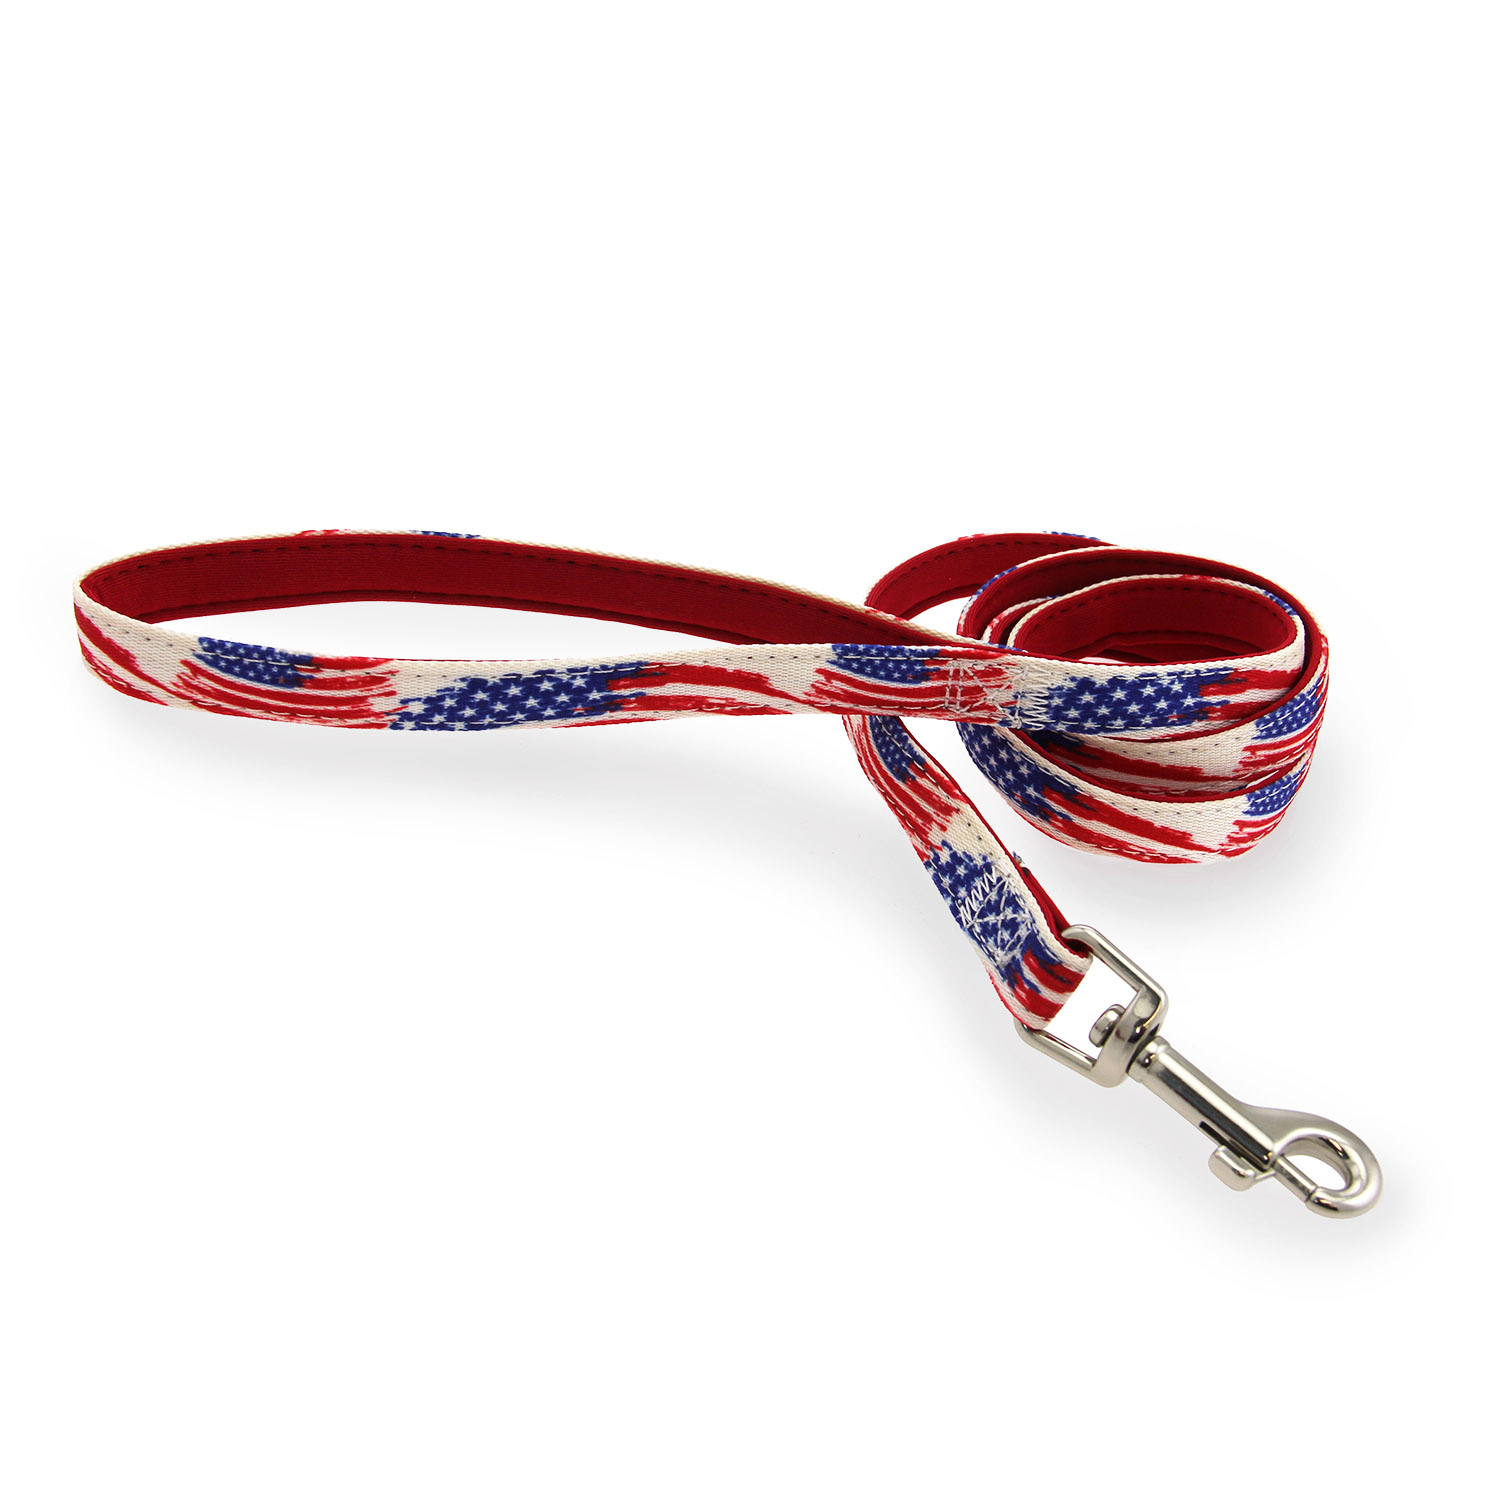 Casual Canine Neoprene Dog Leash - American Flag